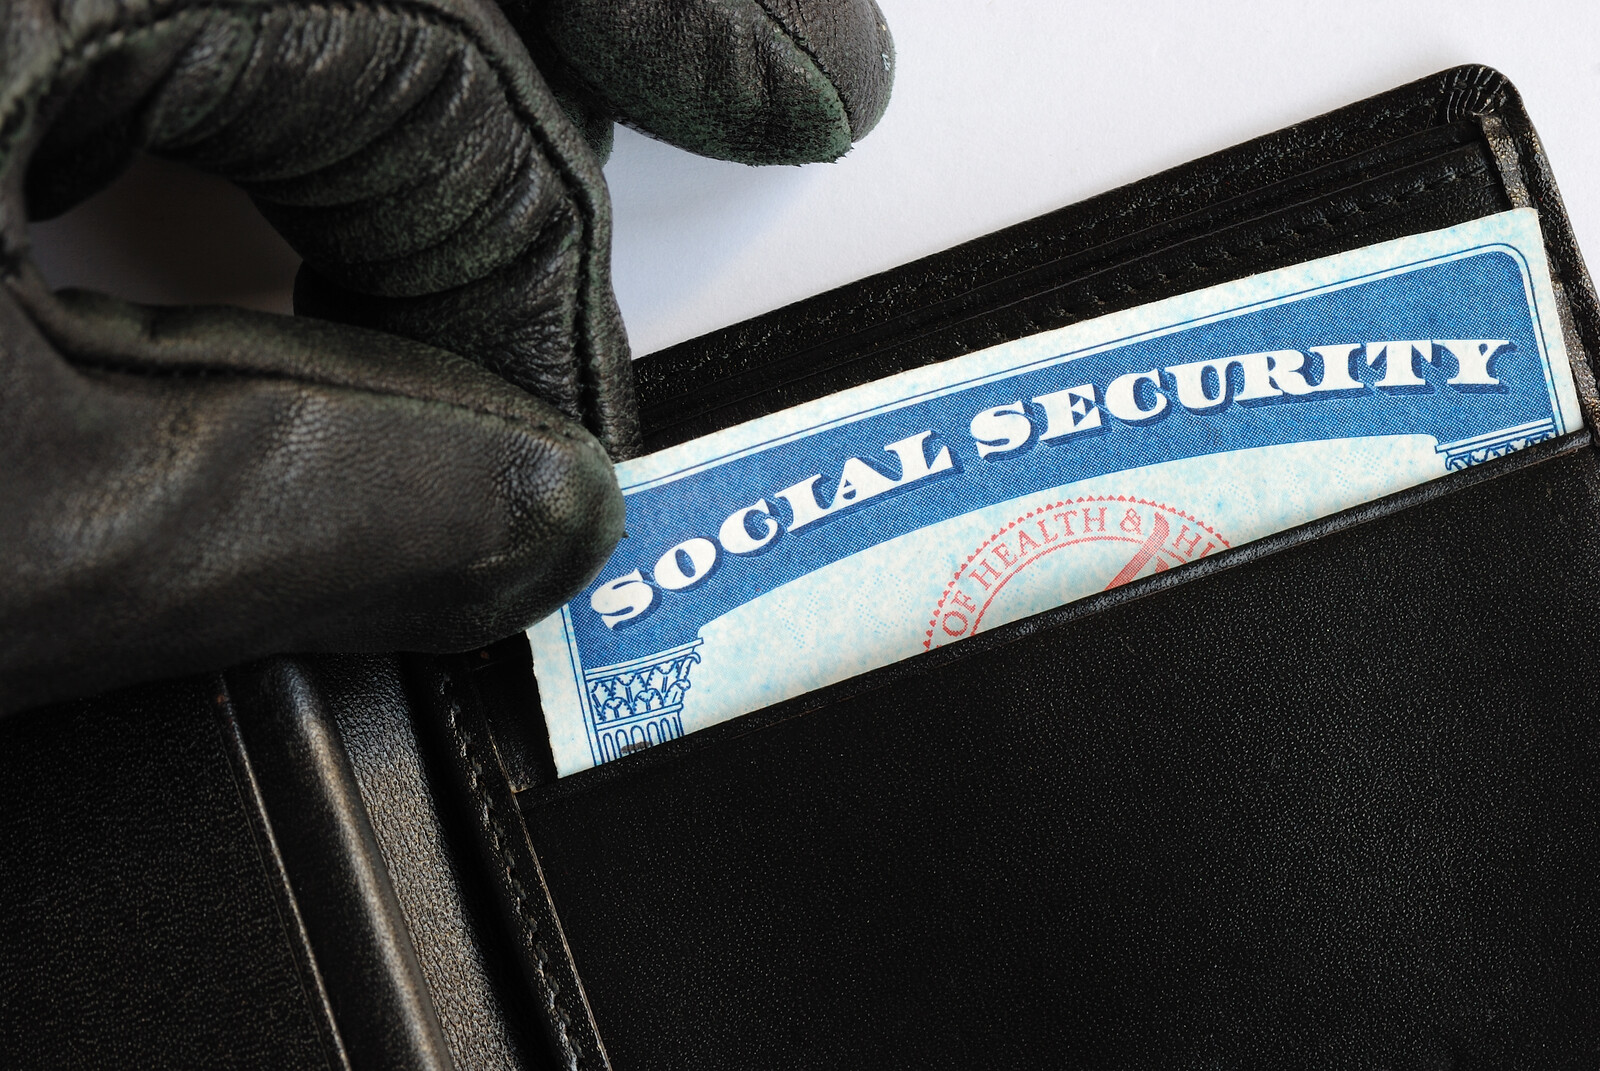 Black gloved hand pulling a social security card out of a wallet – representing identity theft